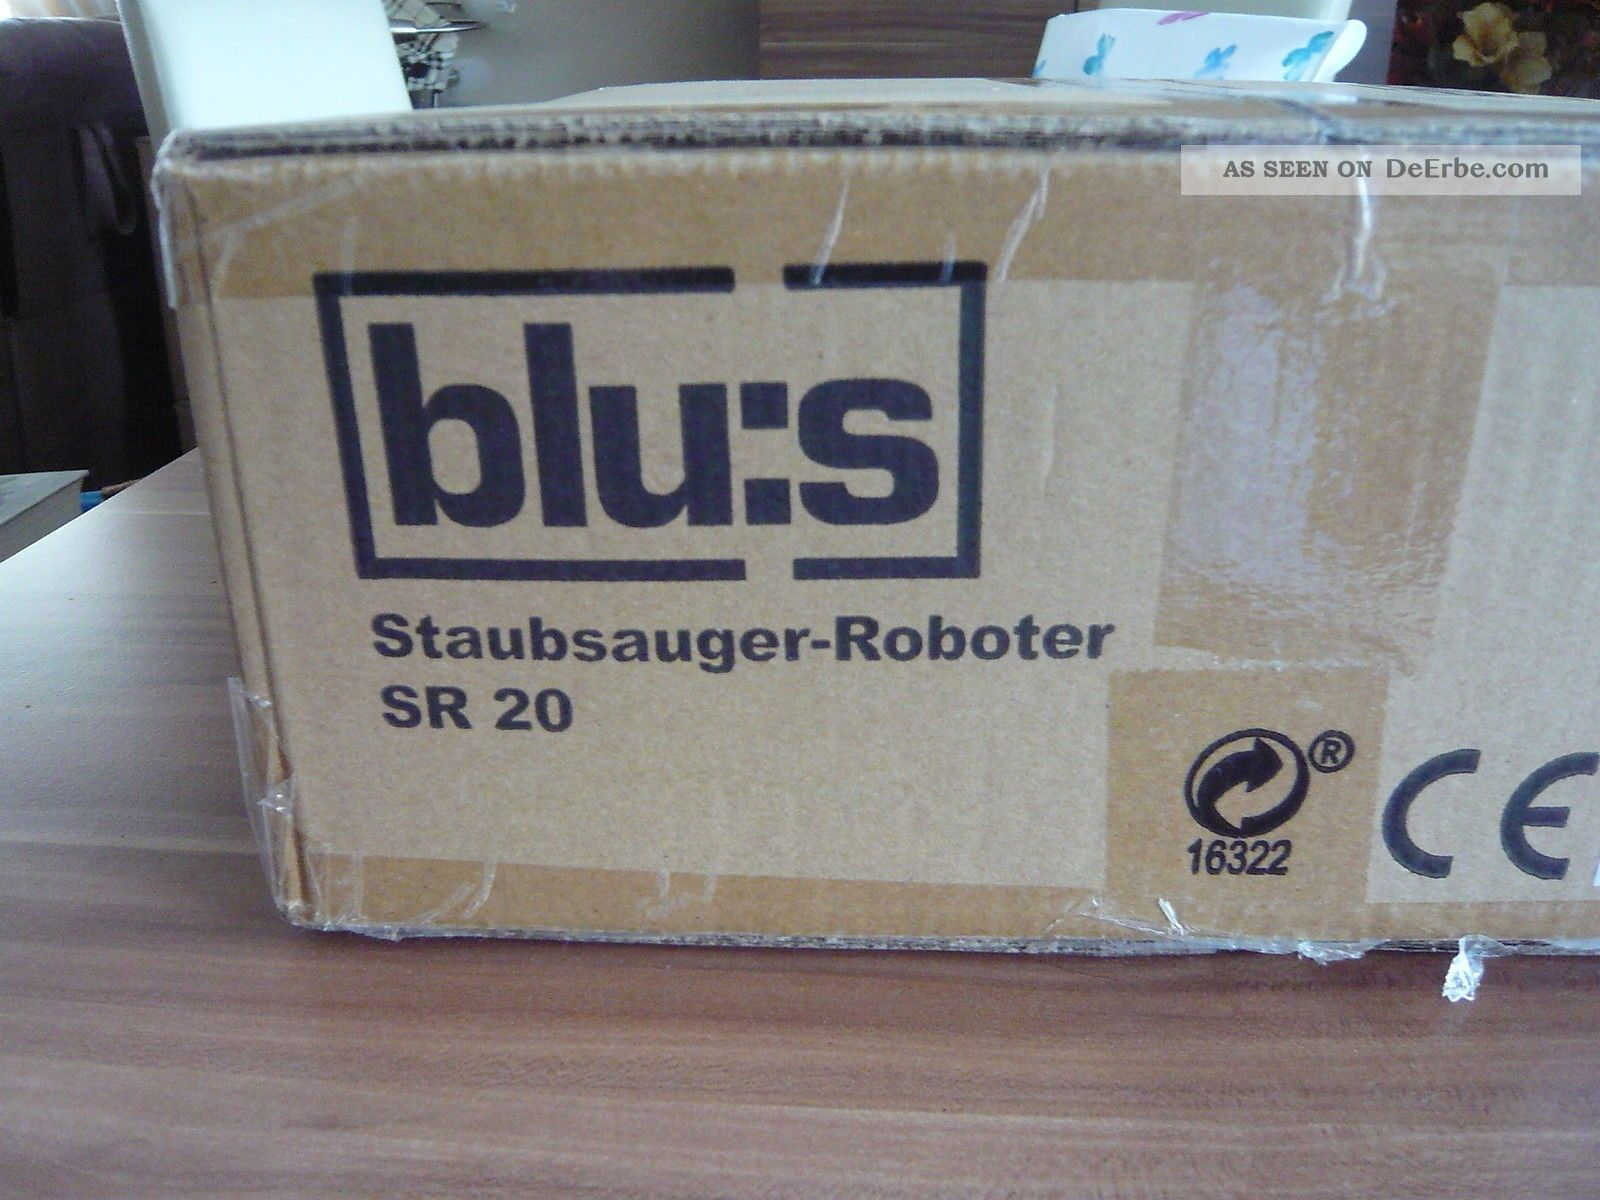 blus staubsauger roboter sr20. Black Bedroom Furniture Sets. Home Design Ideas